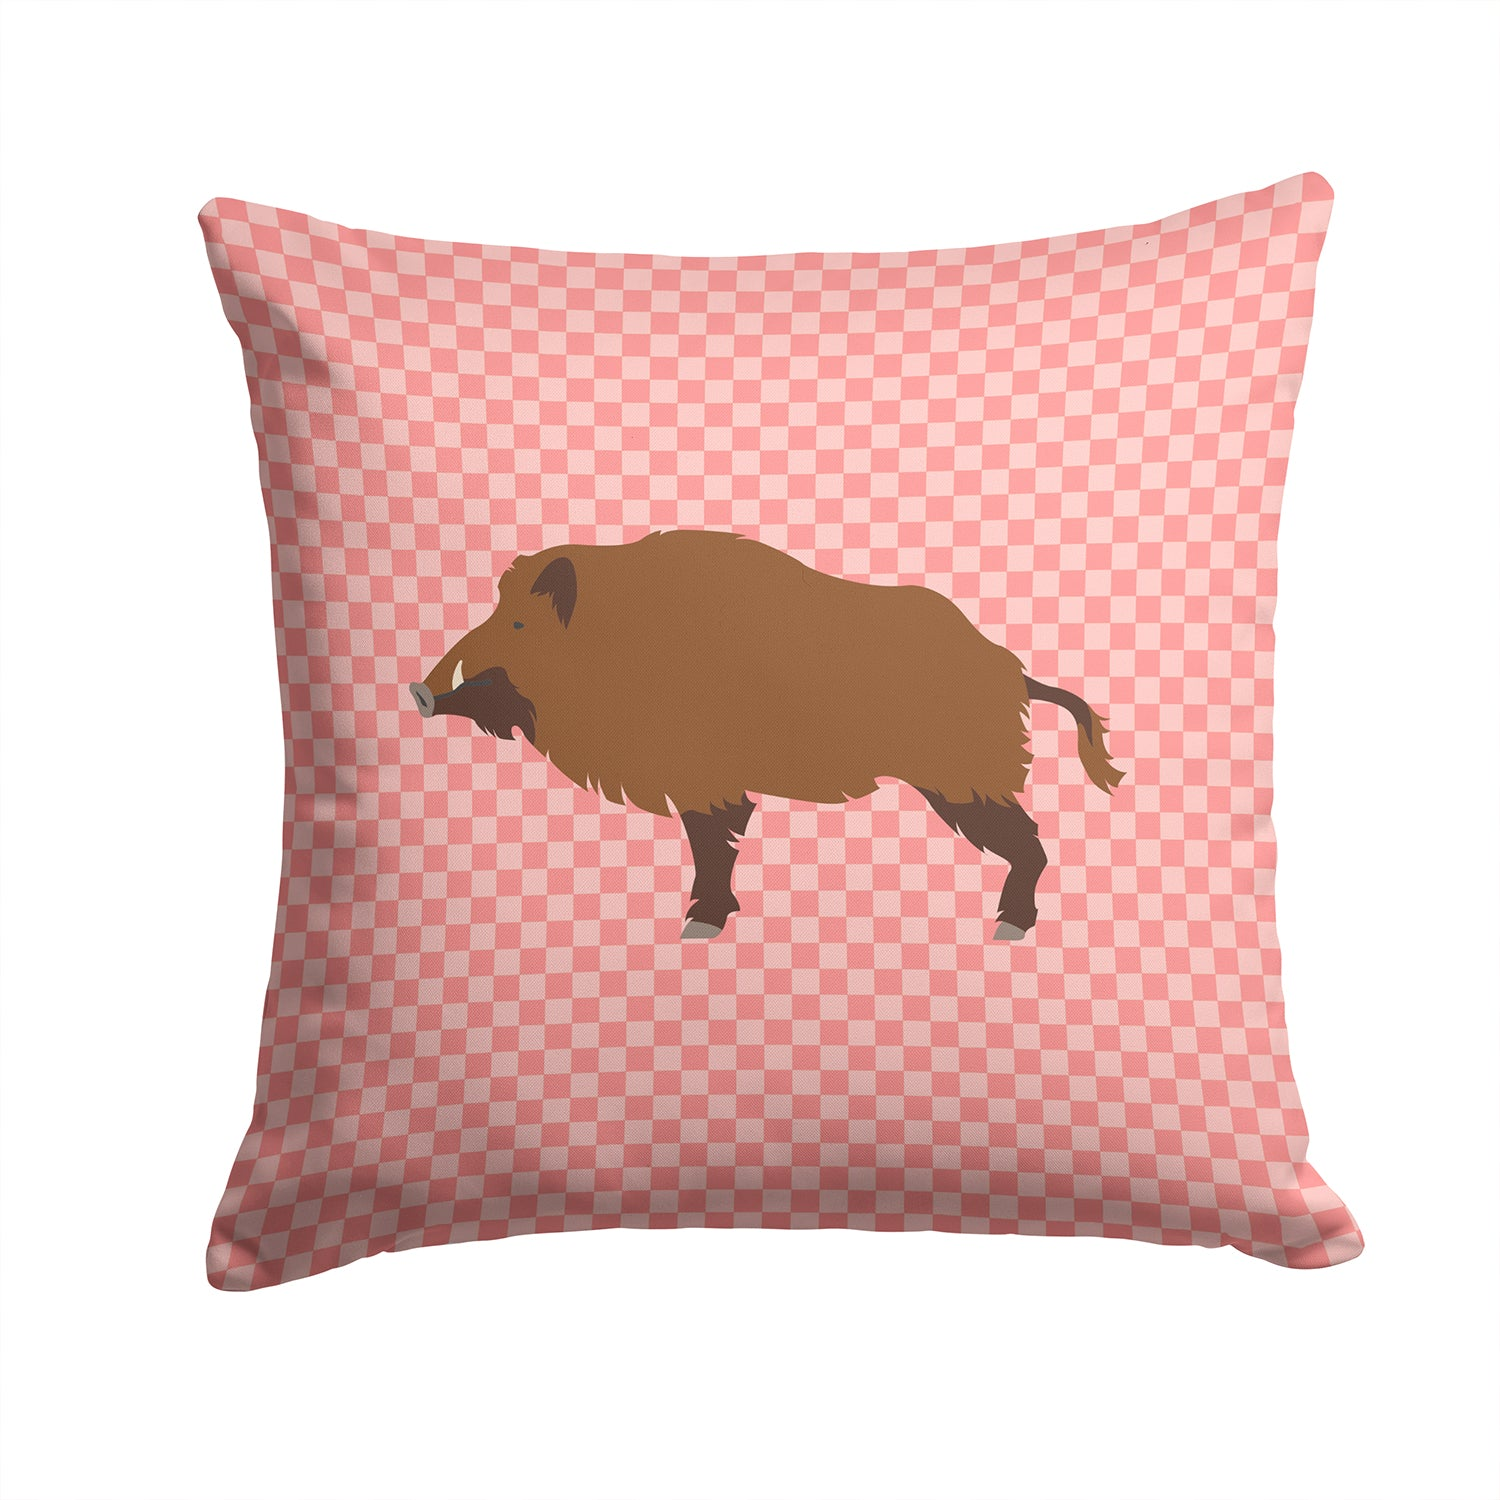 Wild Boar Pig Pink Check Fabric Decorative Pillow BB7936PW1414 by Caroline's Treasures